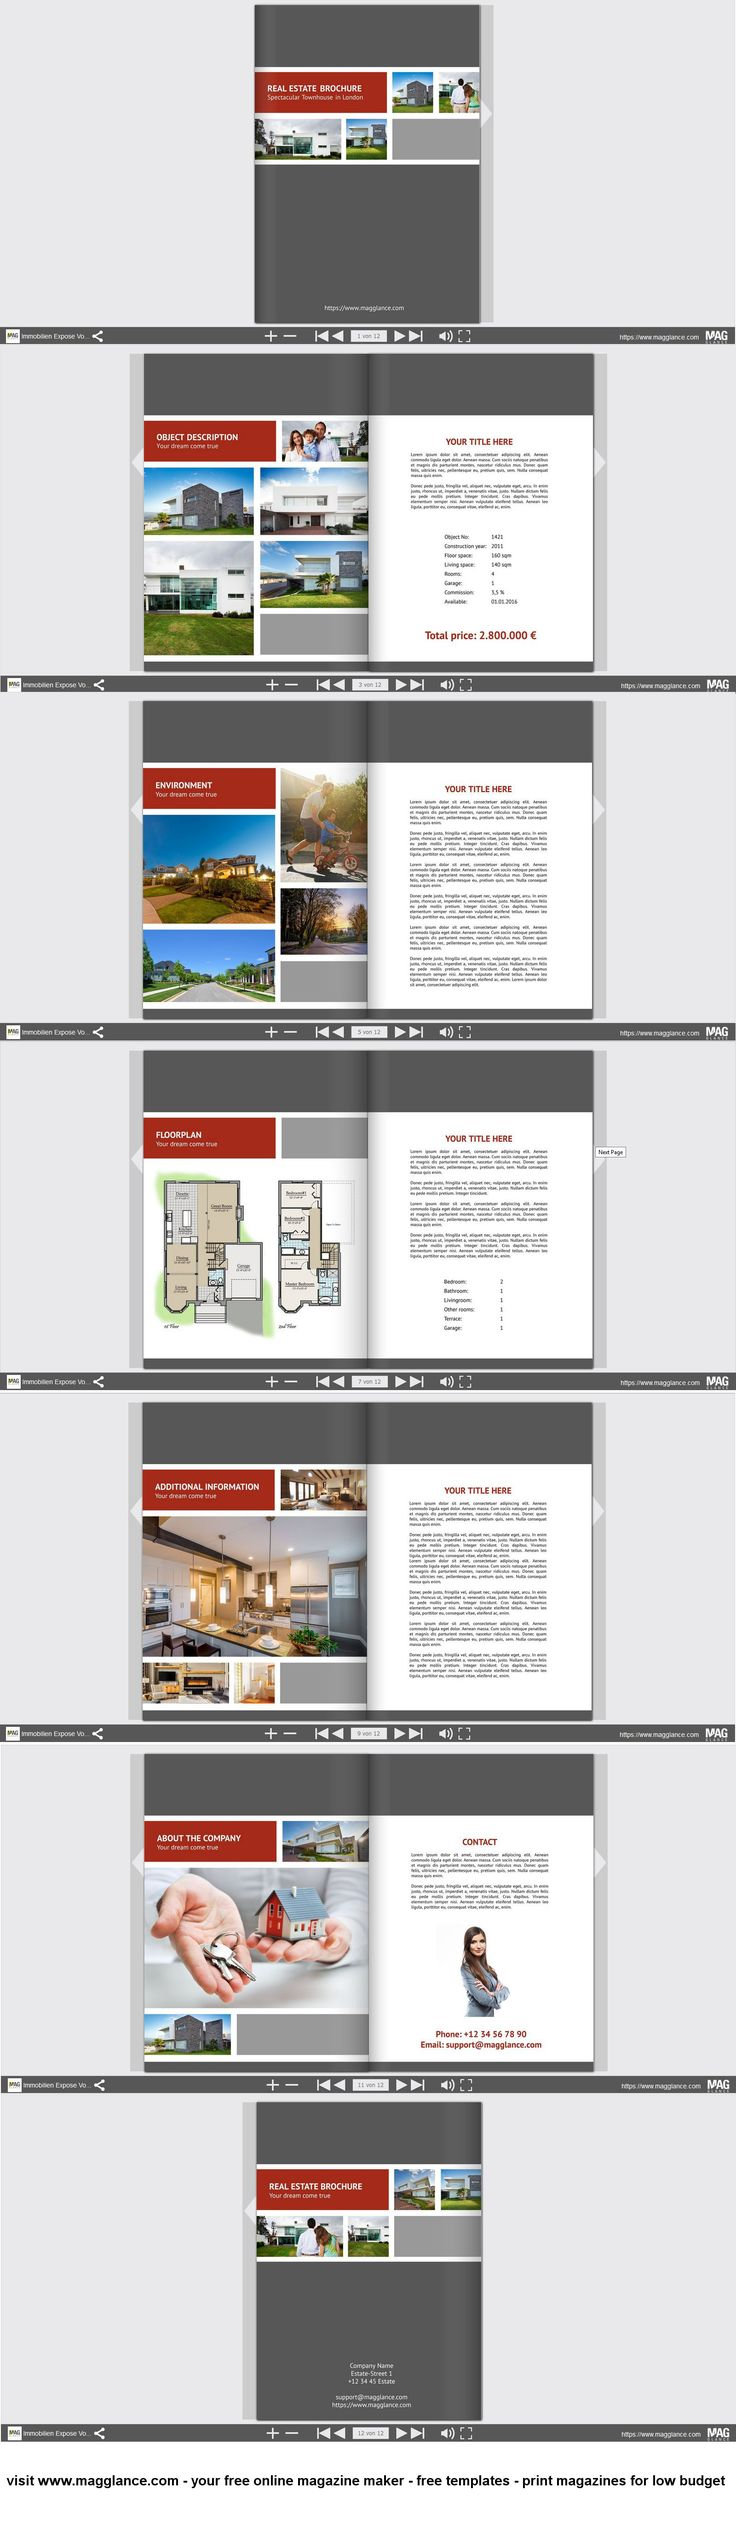 Best 25 brochure maker ideas on pinterest booklet for Brochure templates maker